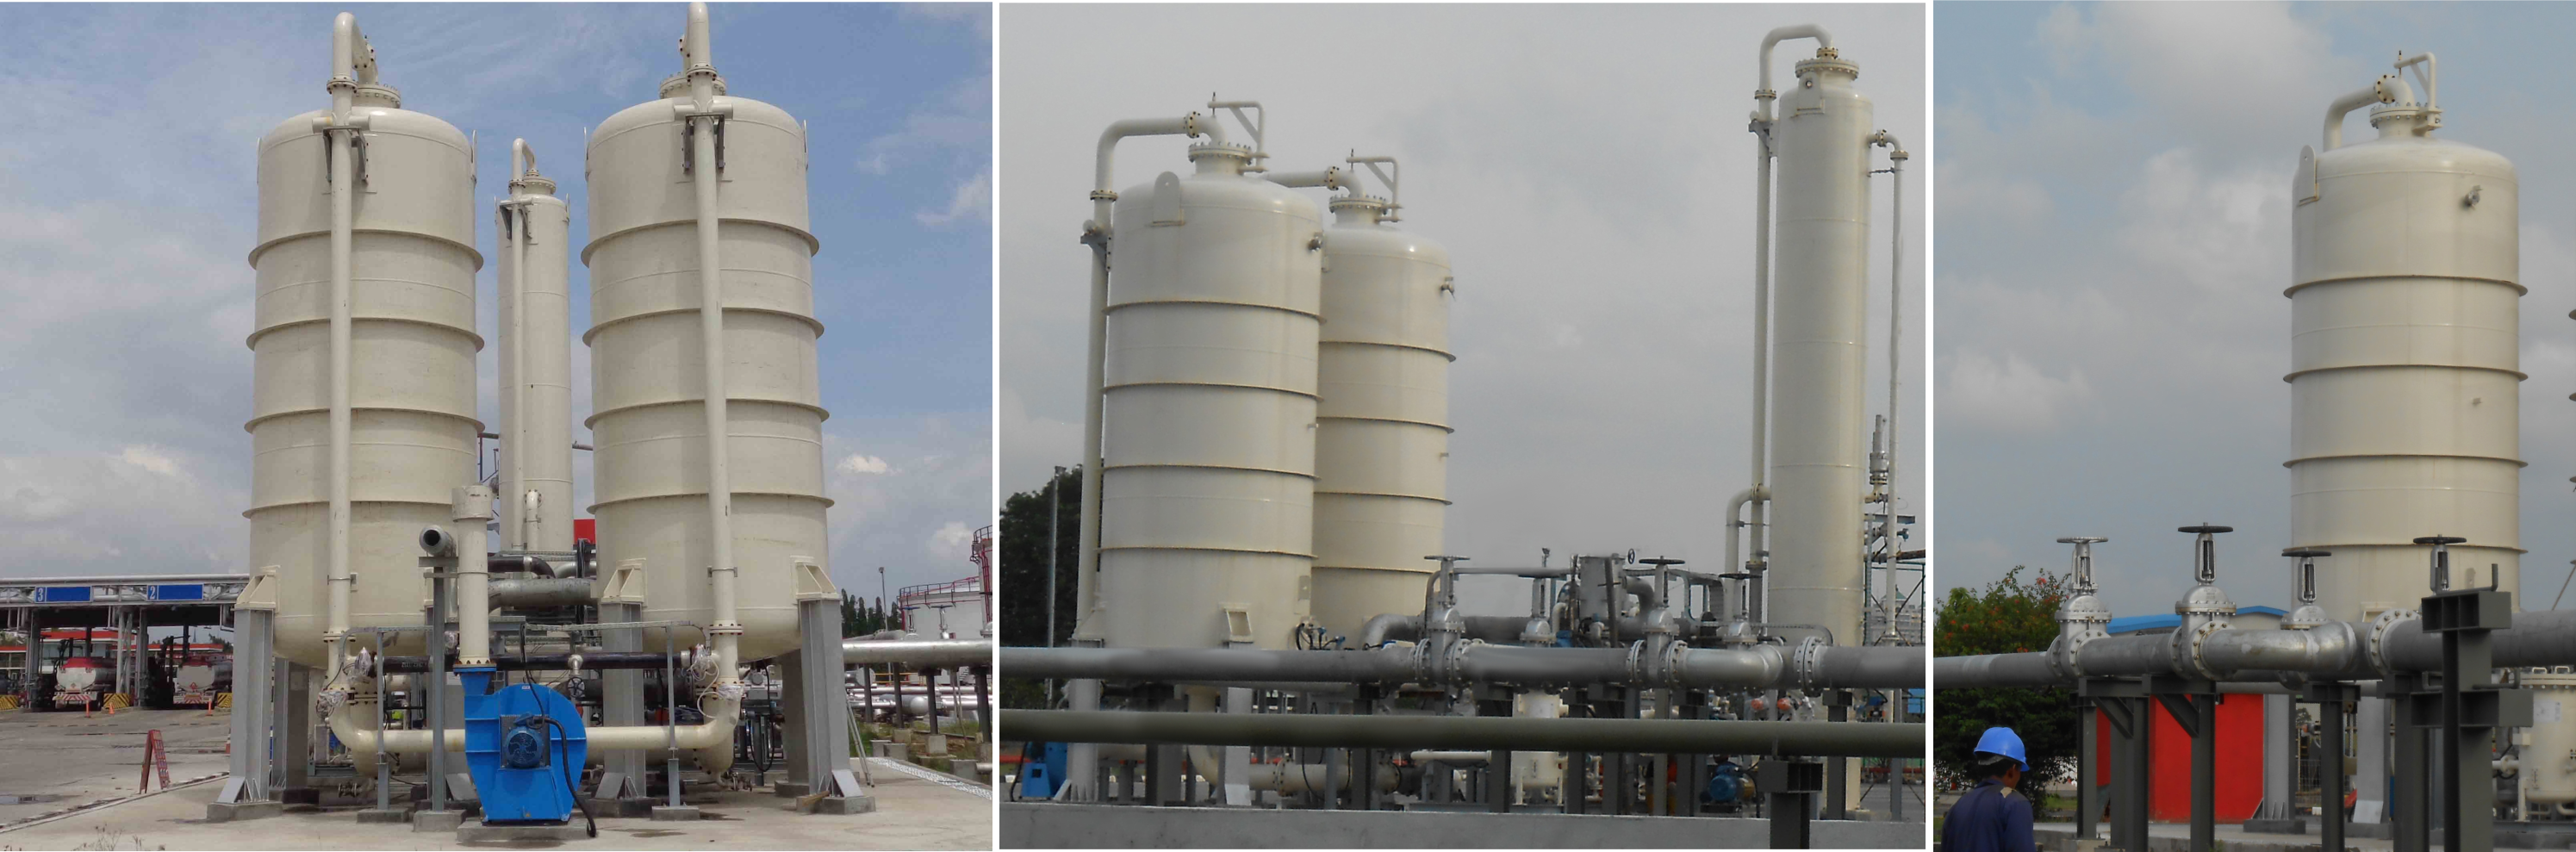 Vapour Recovery UK Refineries and oil distribution terminals